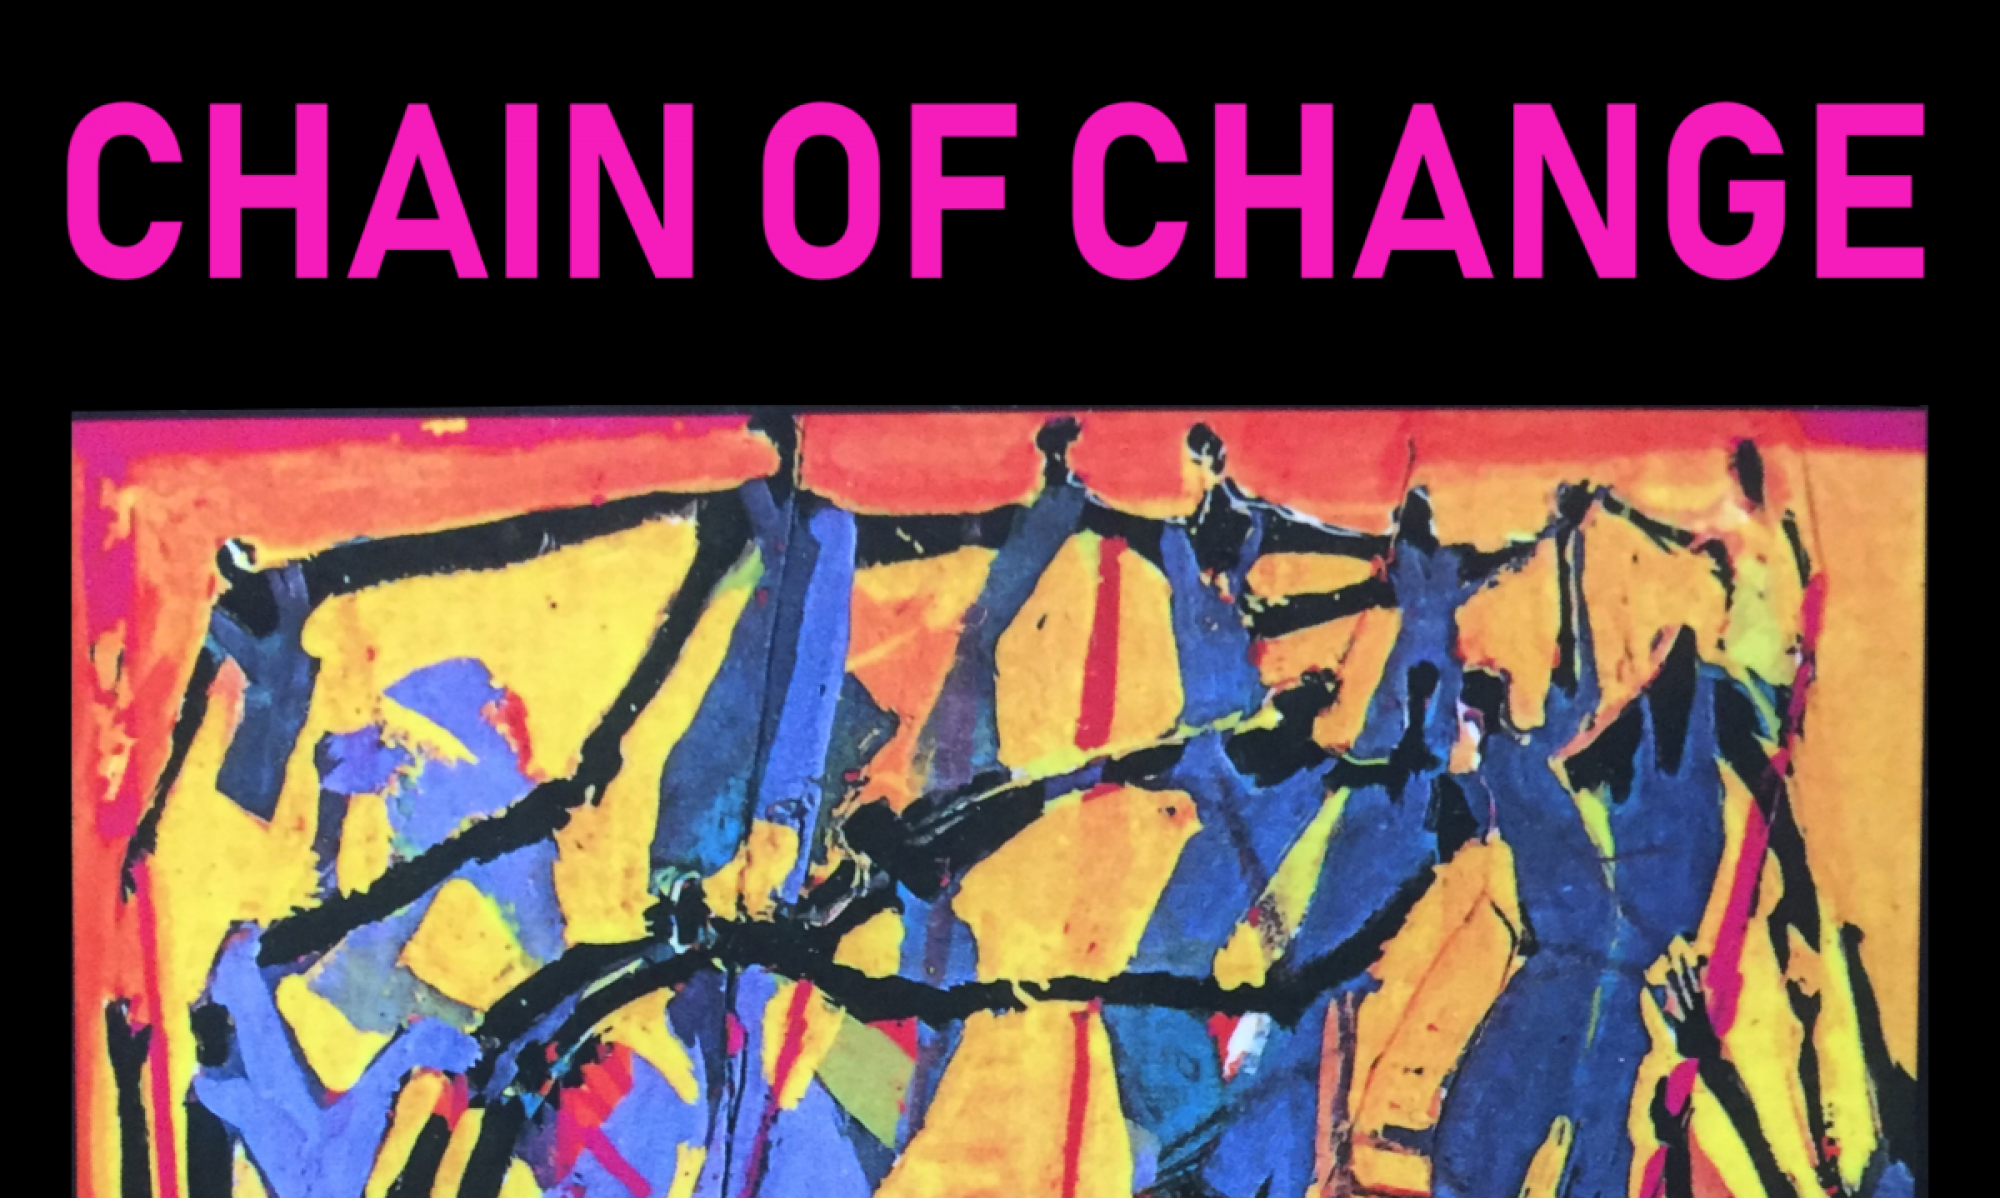 The Original Chain of Change